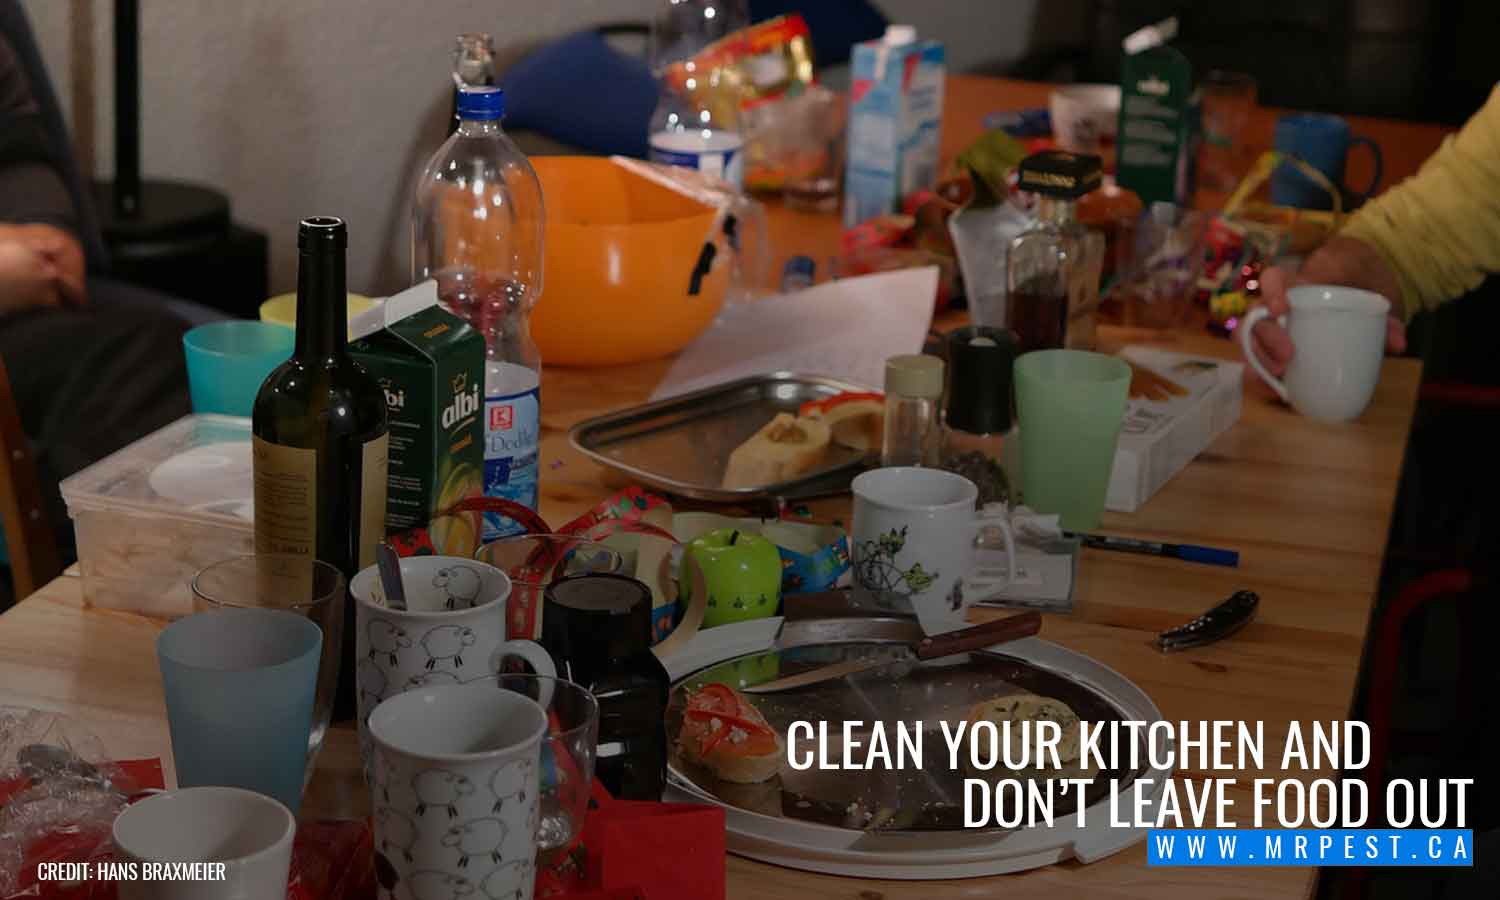 Clean your kitchen and don't leave food out